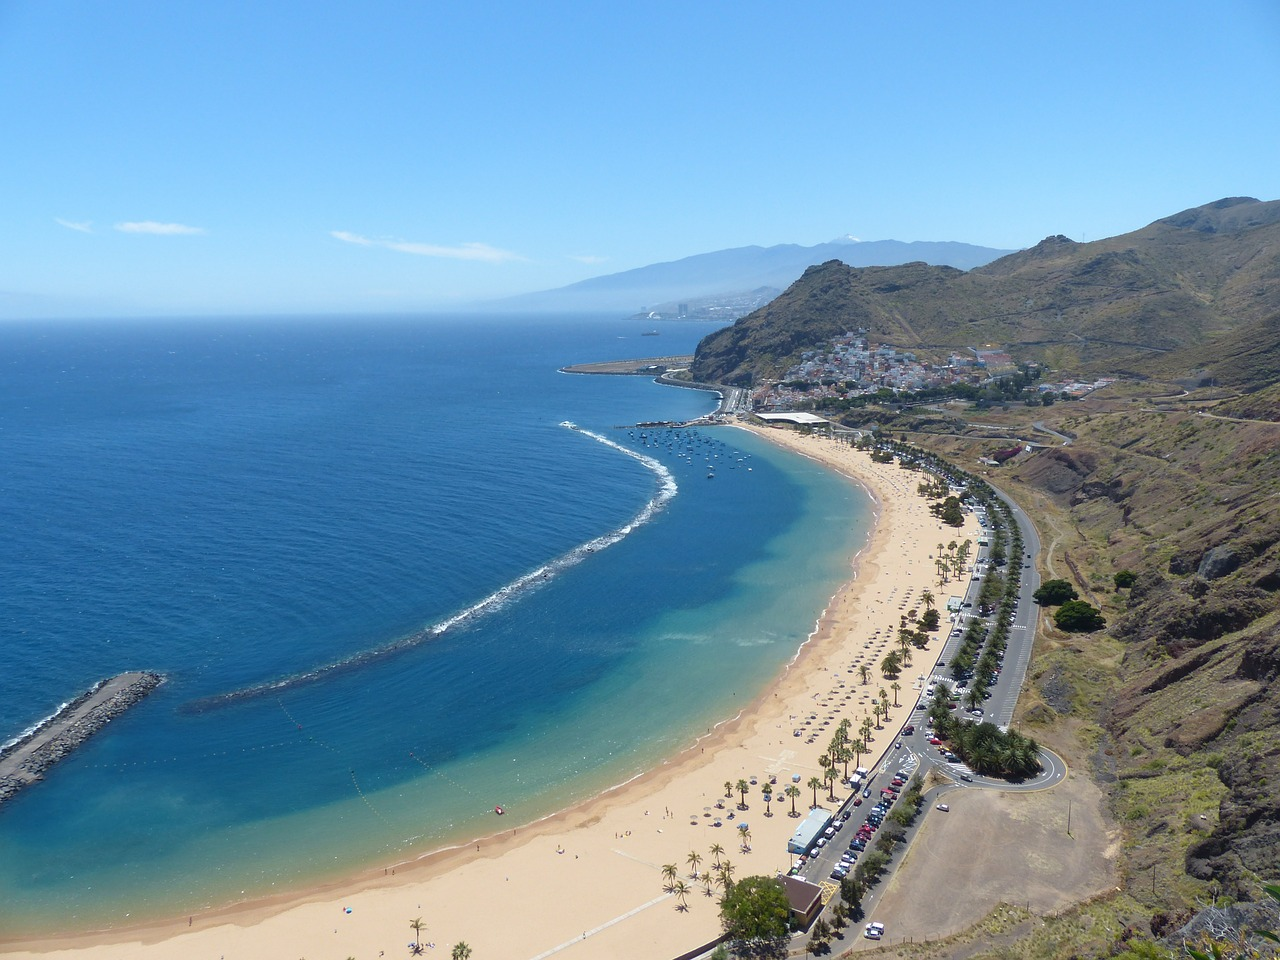 Solo Trip to Tenerife & Solo Holidays Tenerife (Image Credit: Pixabay)